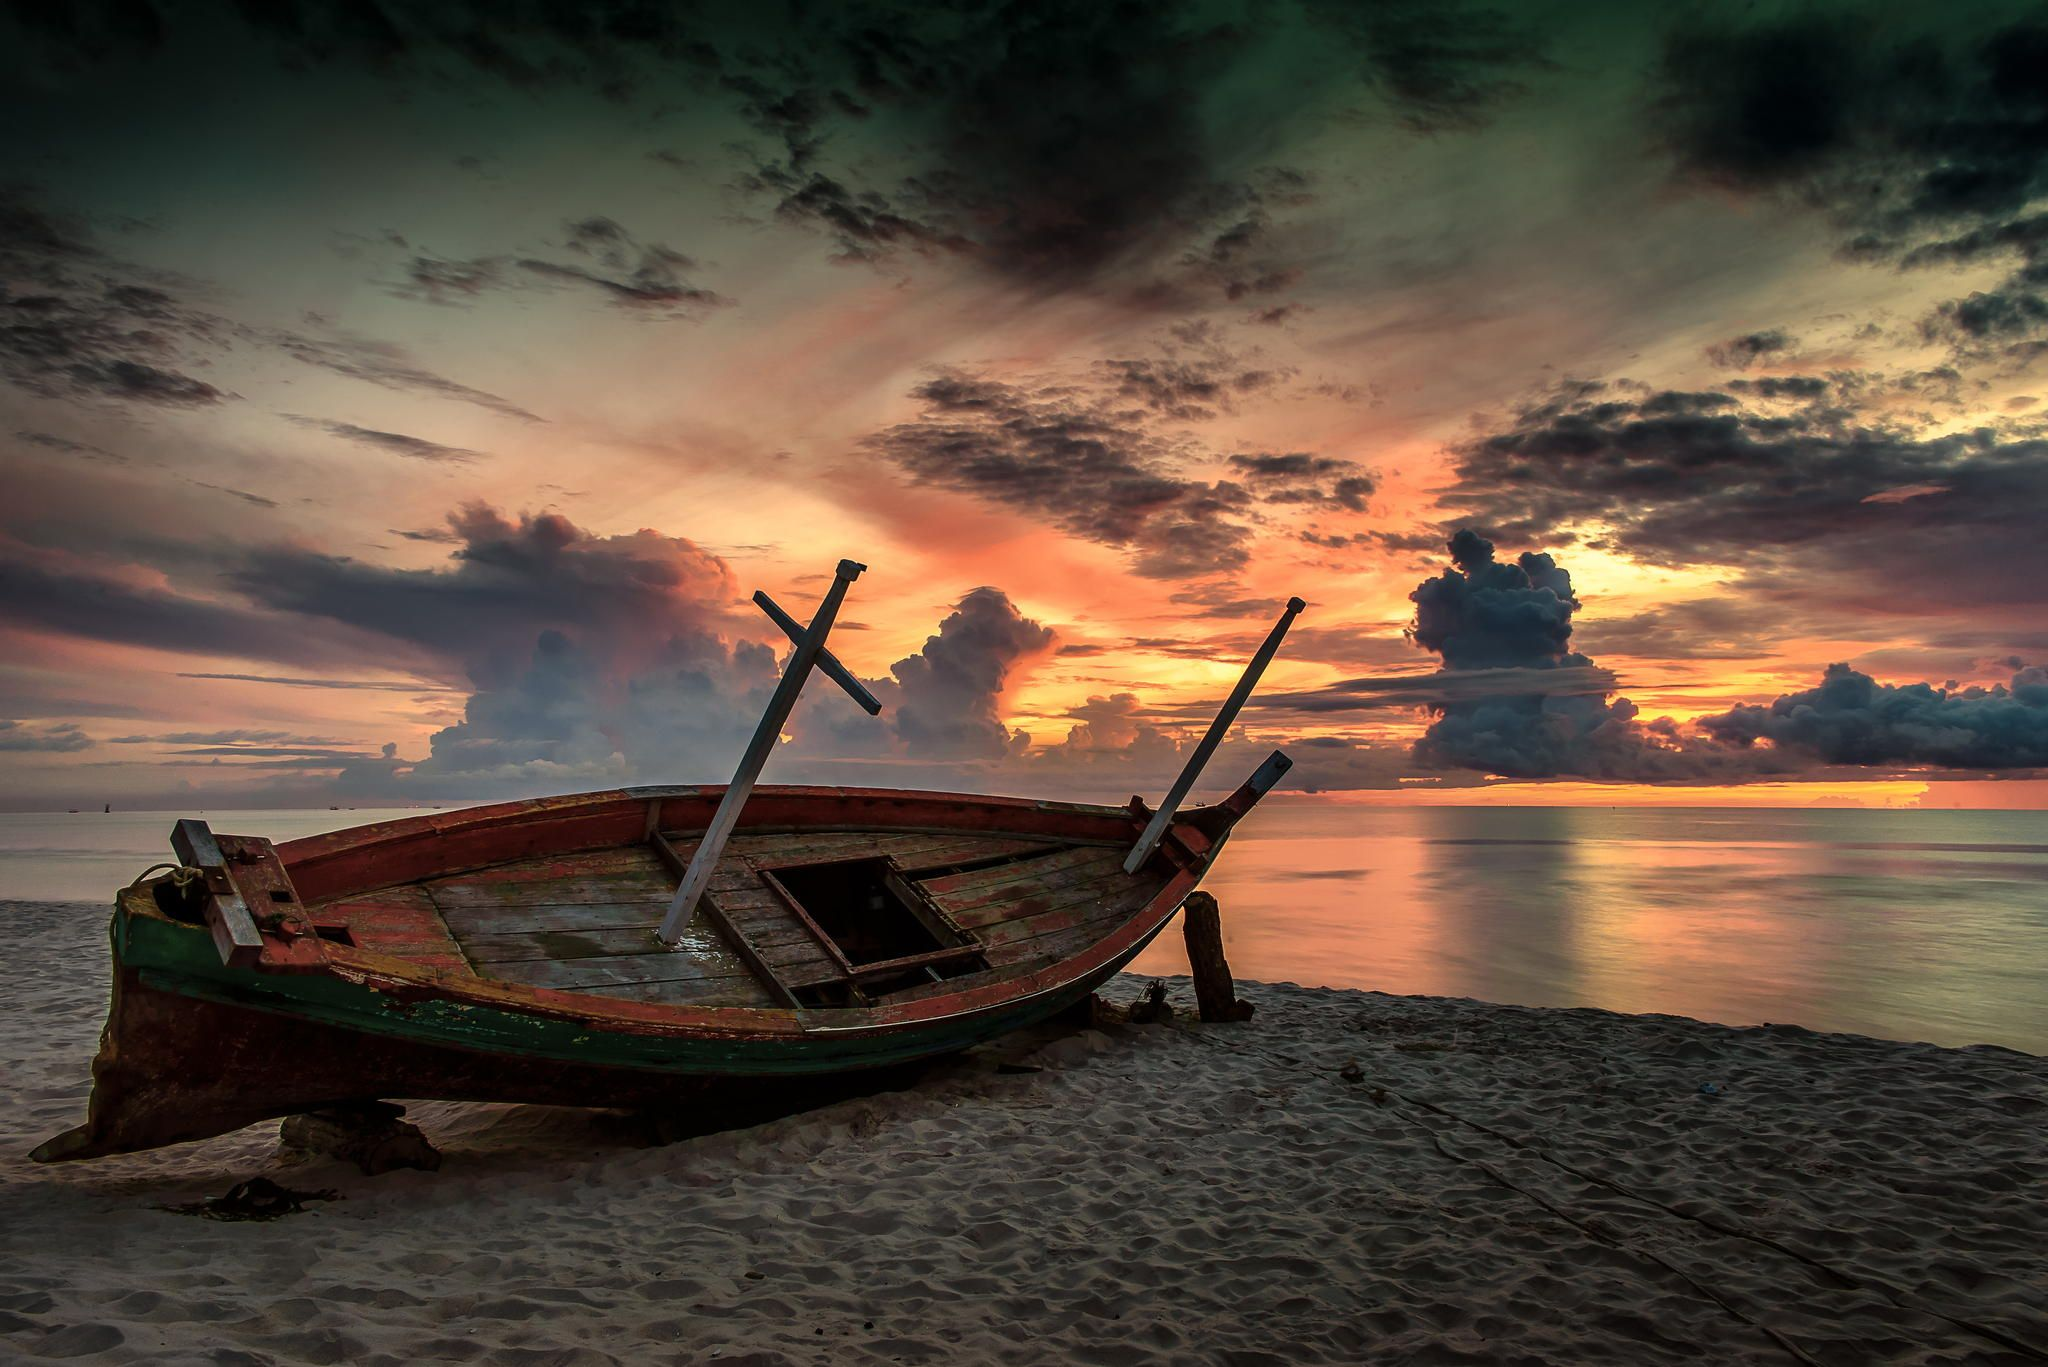 Photograph Old Fishing Boat On The Beach By Paitoon Sangsakorn On 500px Boat Fishing Boats Small Boats